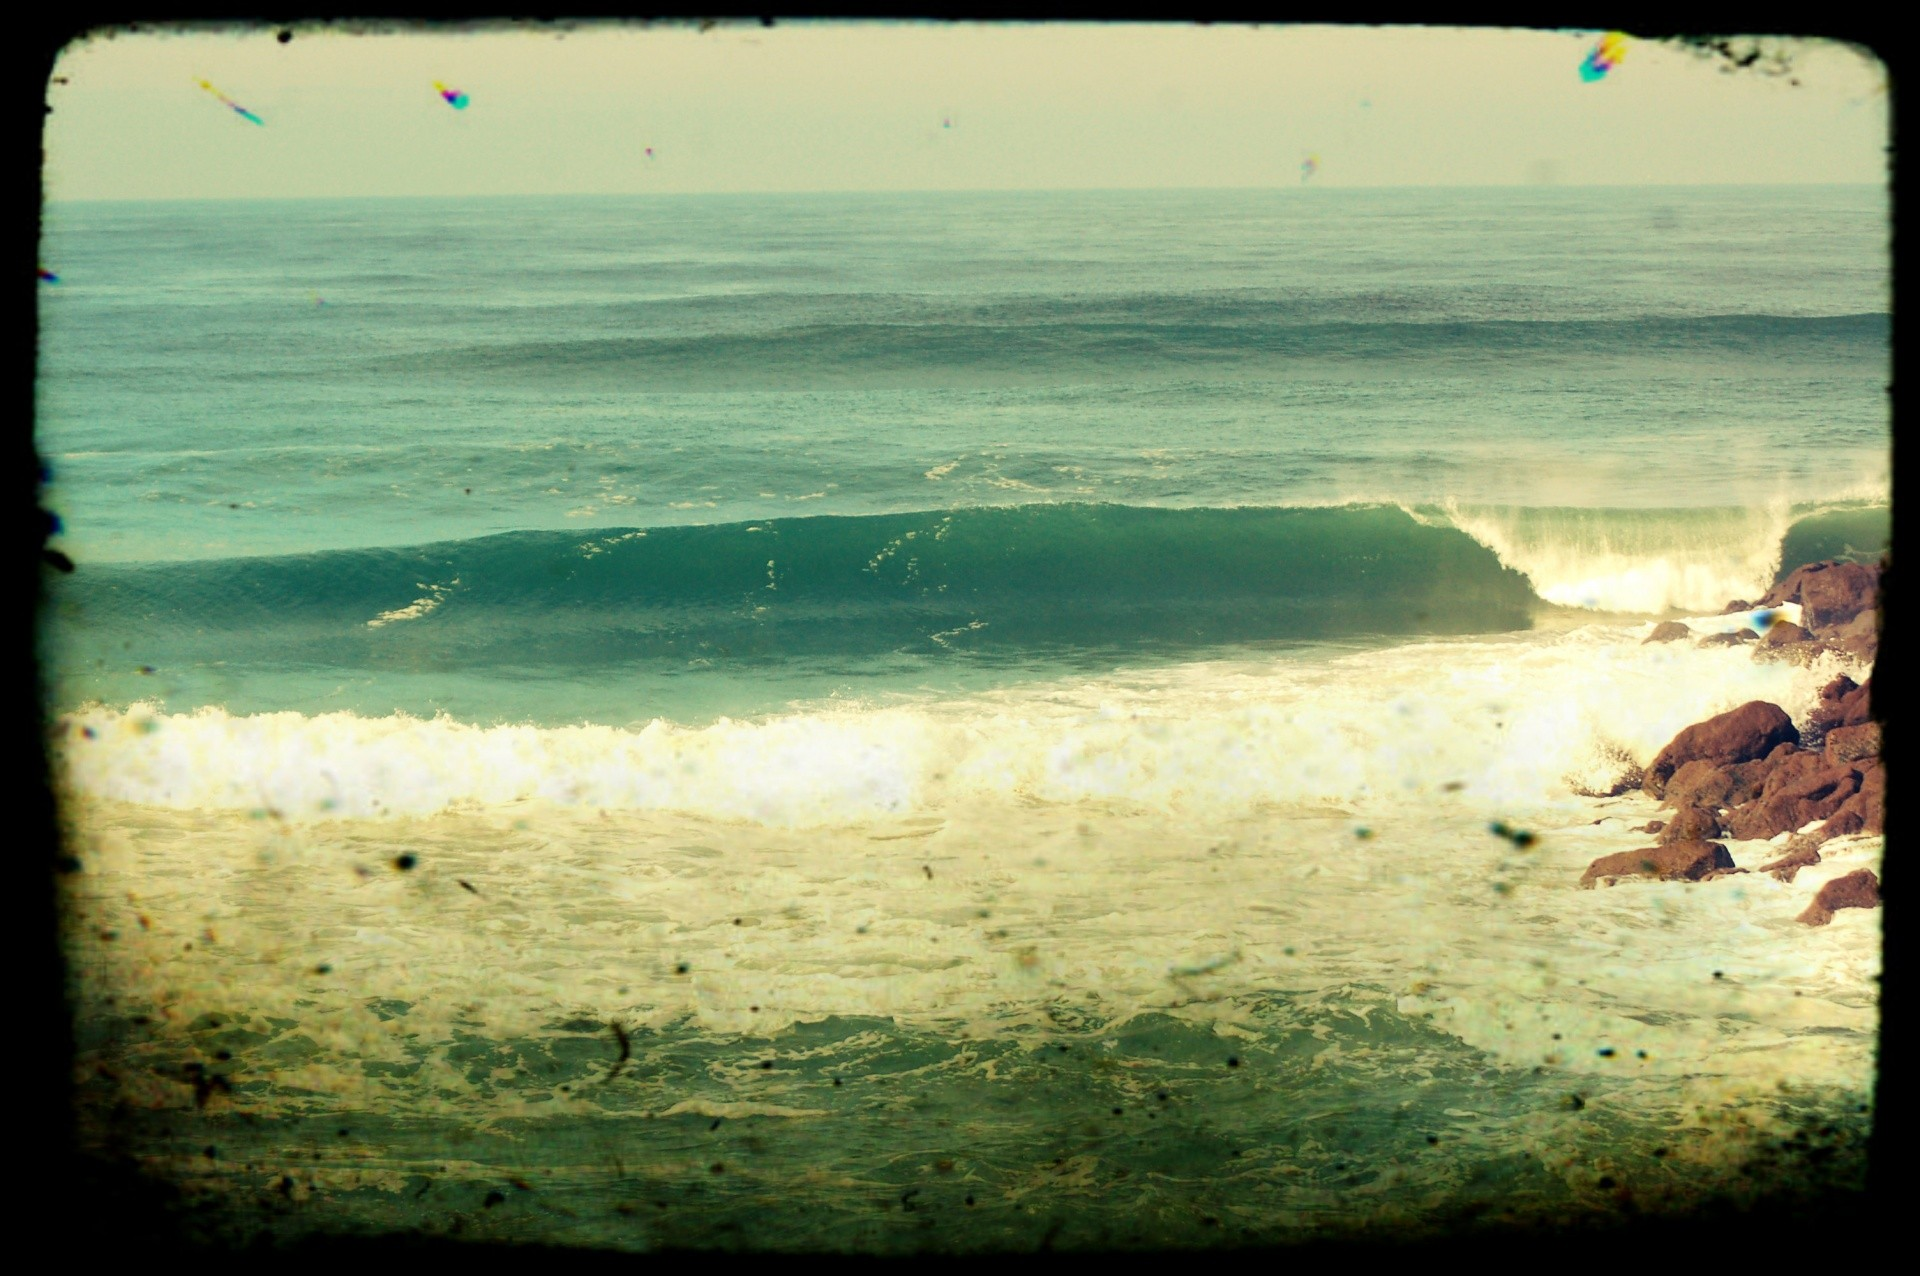 h2o holidays hossegor's photo of Capbreton (La Piste/VVF)